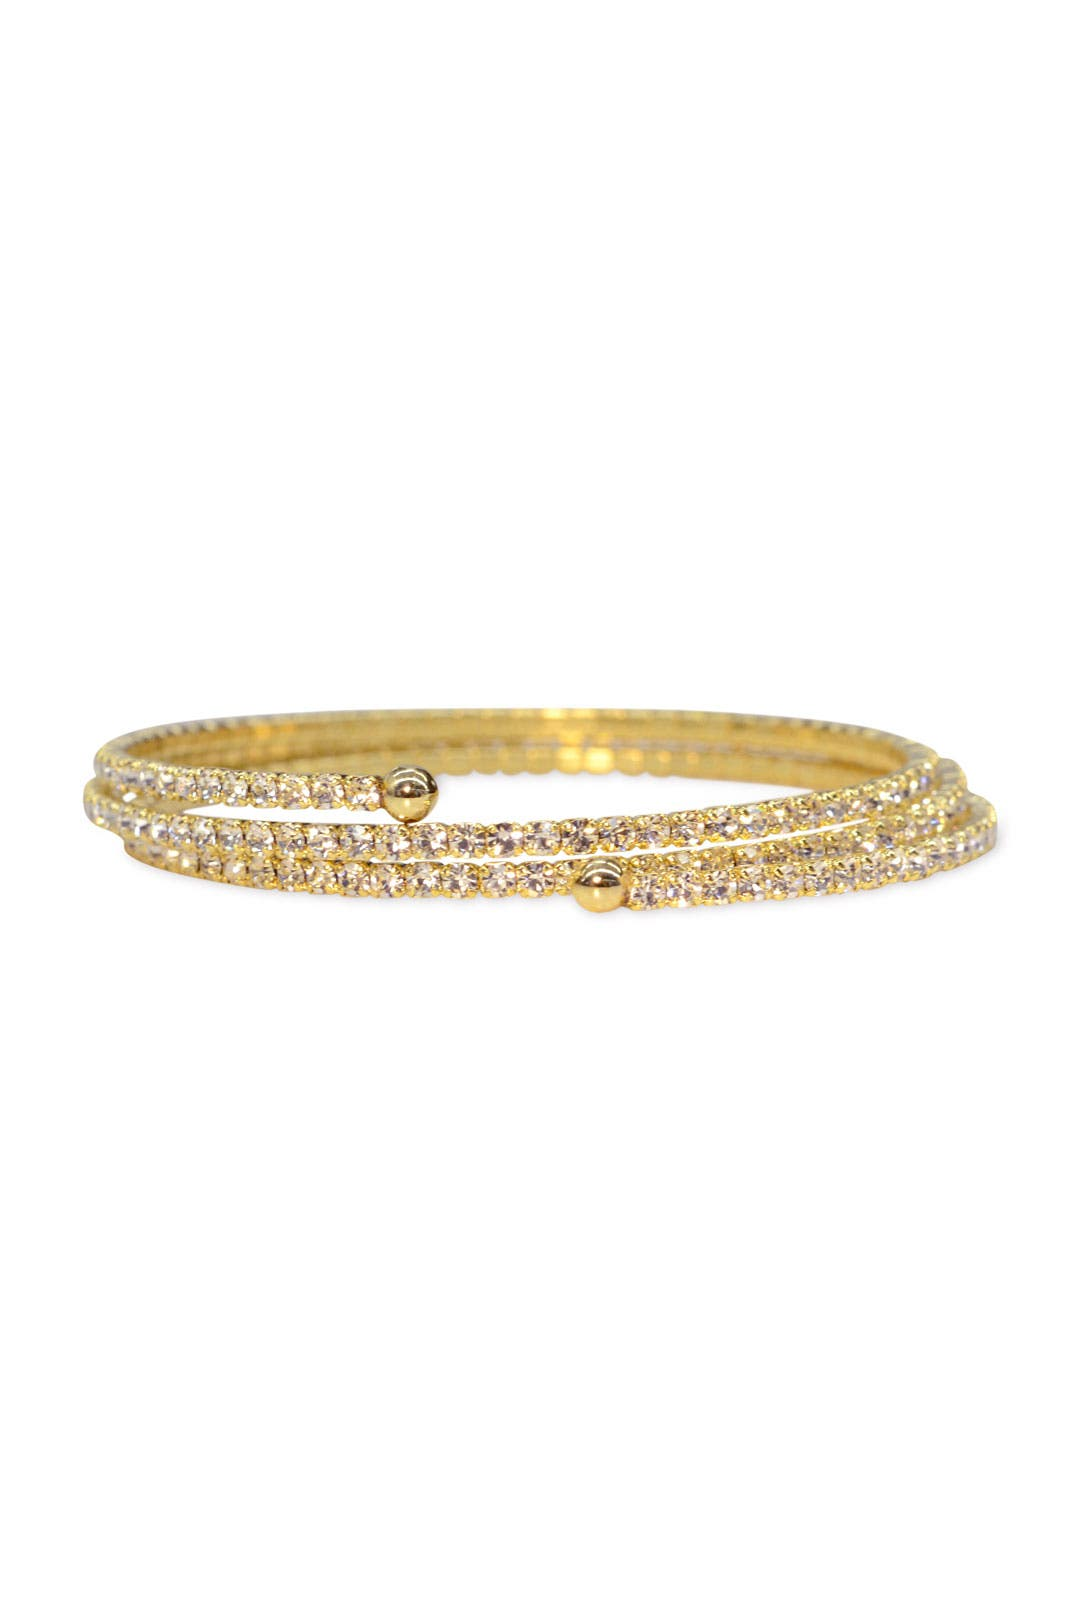 Gold Lightspeed Bracelet by Lisa Freede